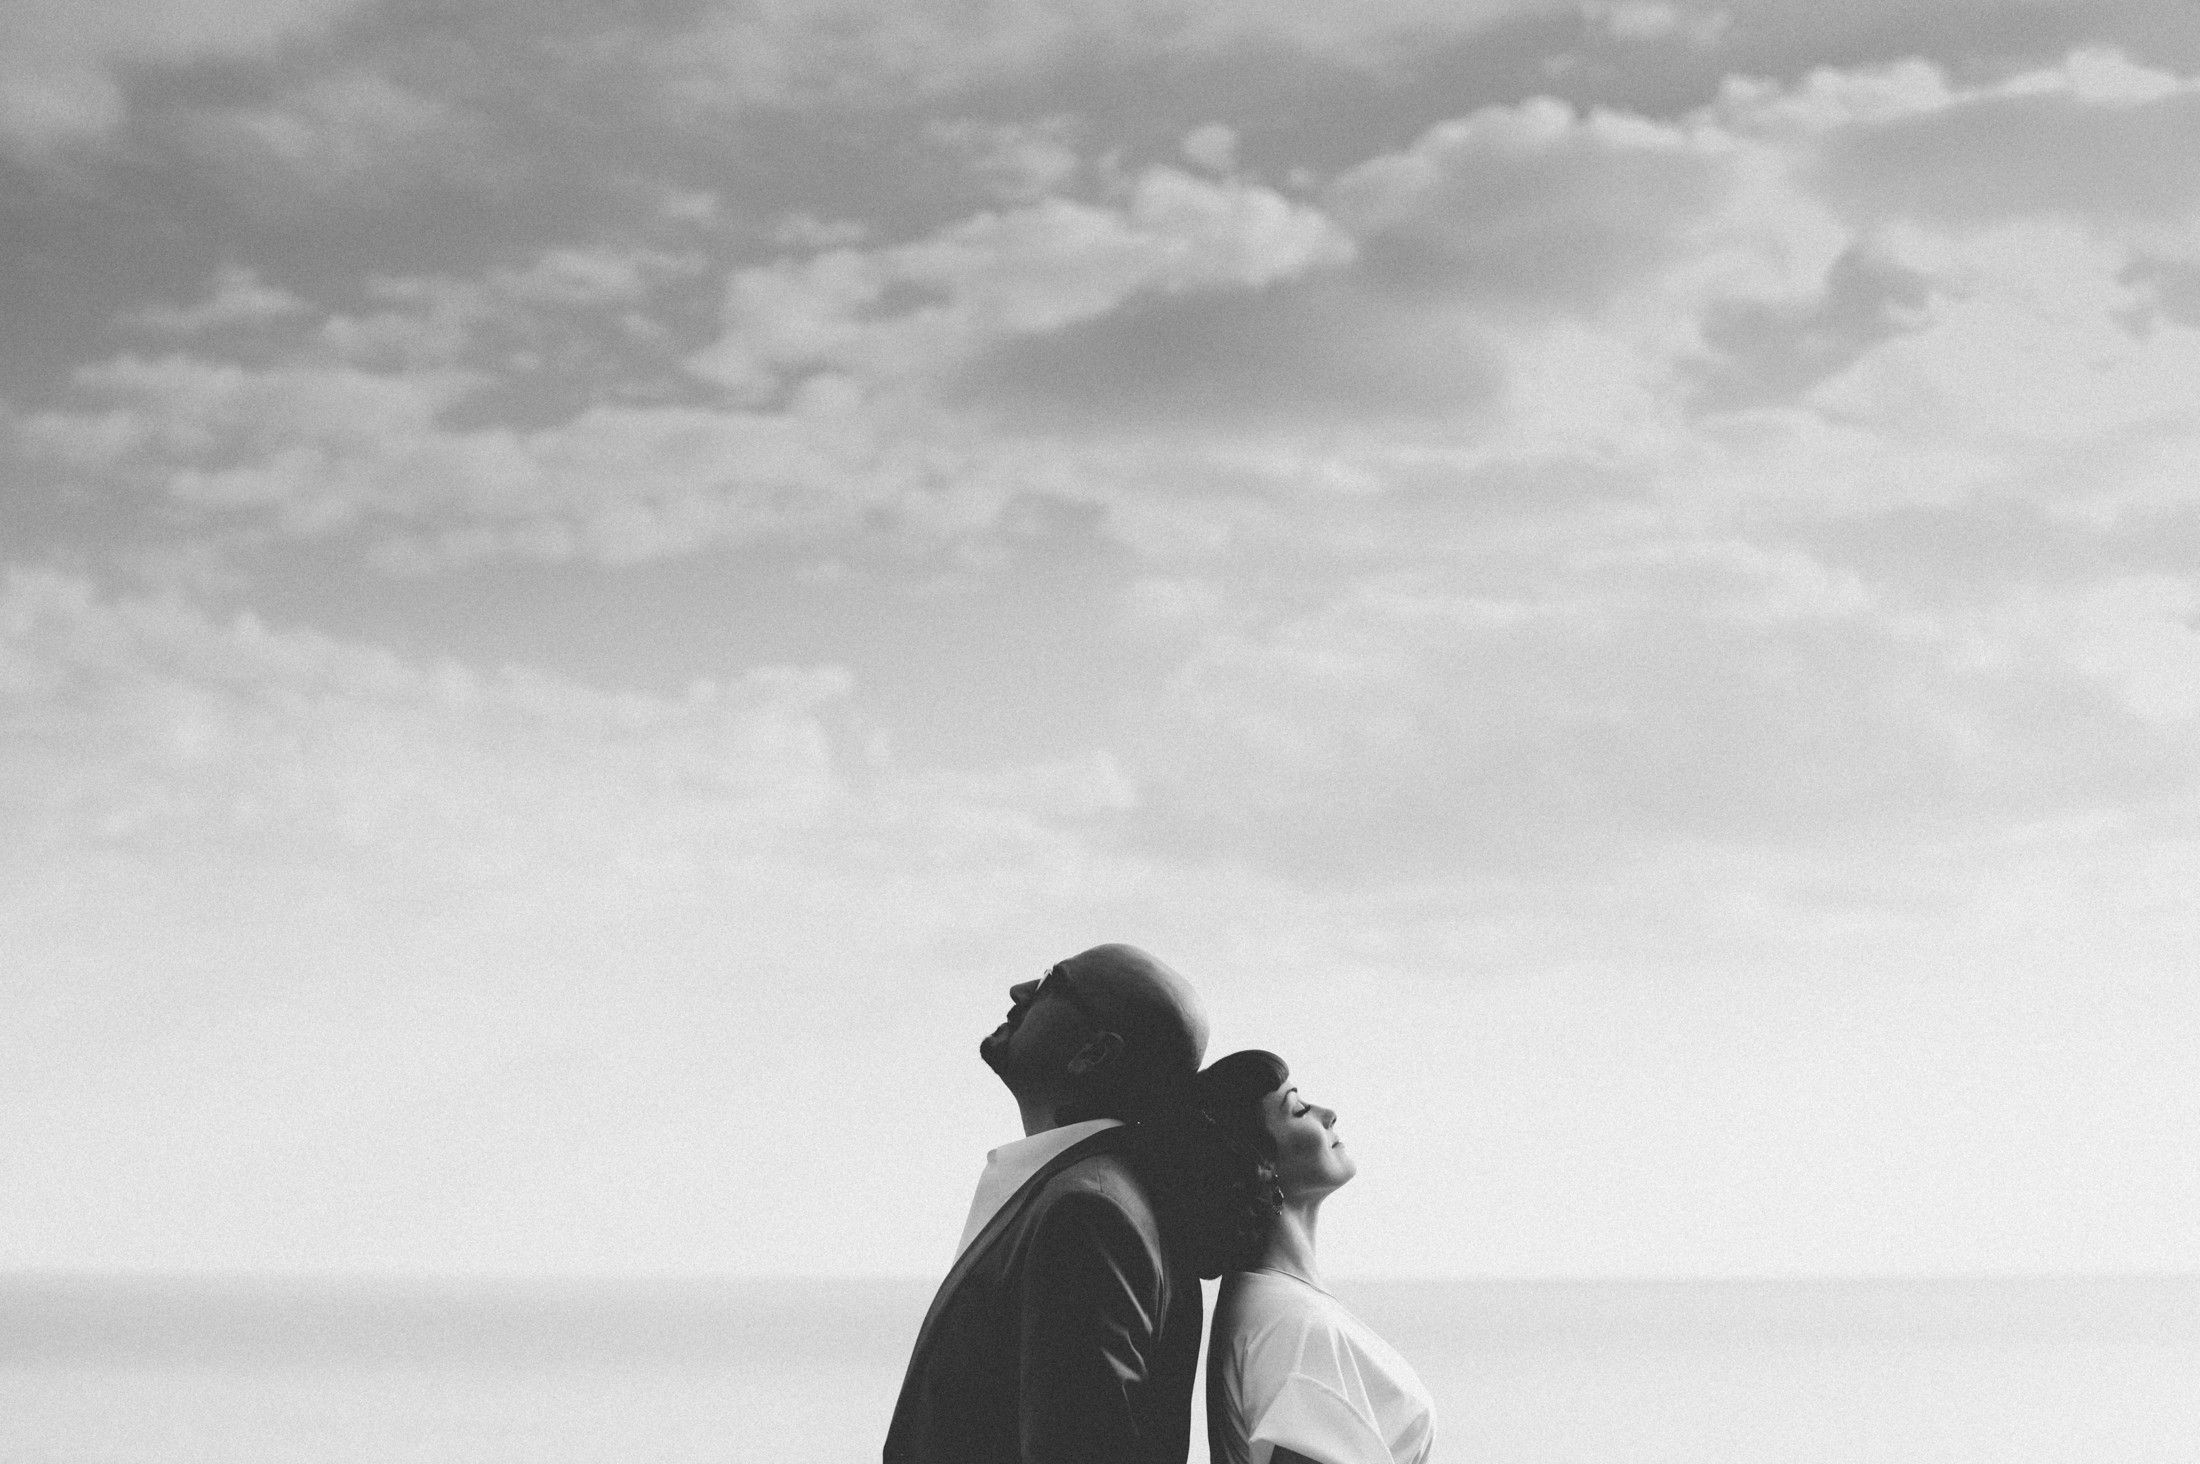 positano elopement bride and groom's portrait in black and white